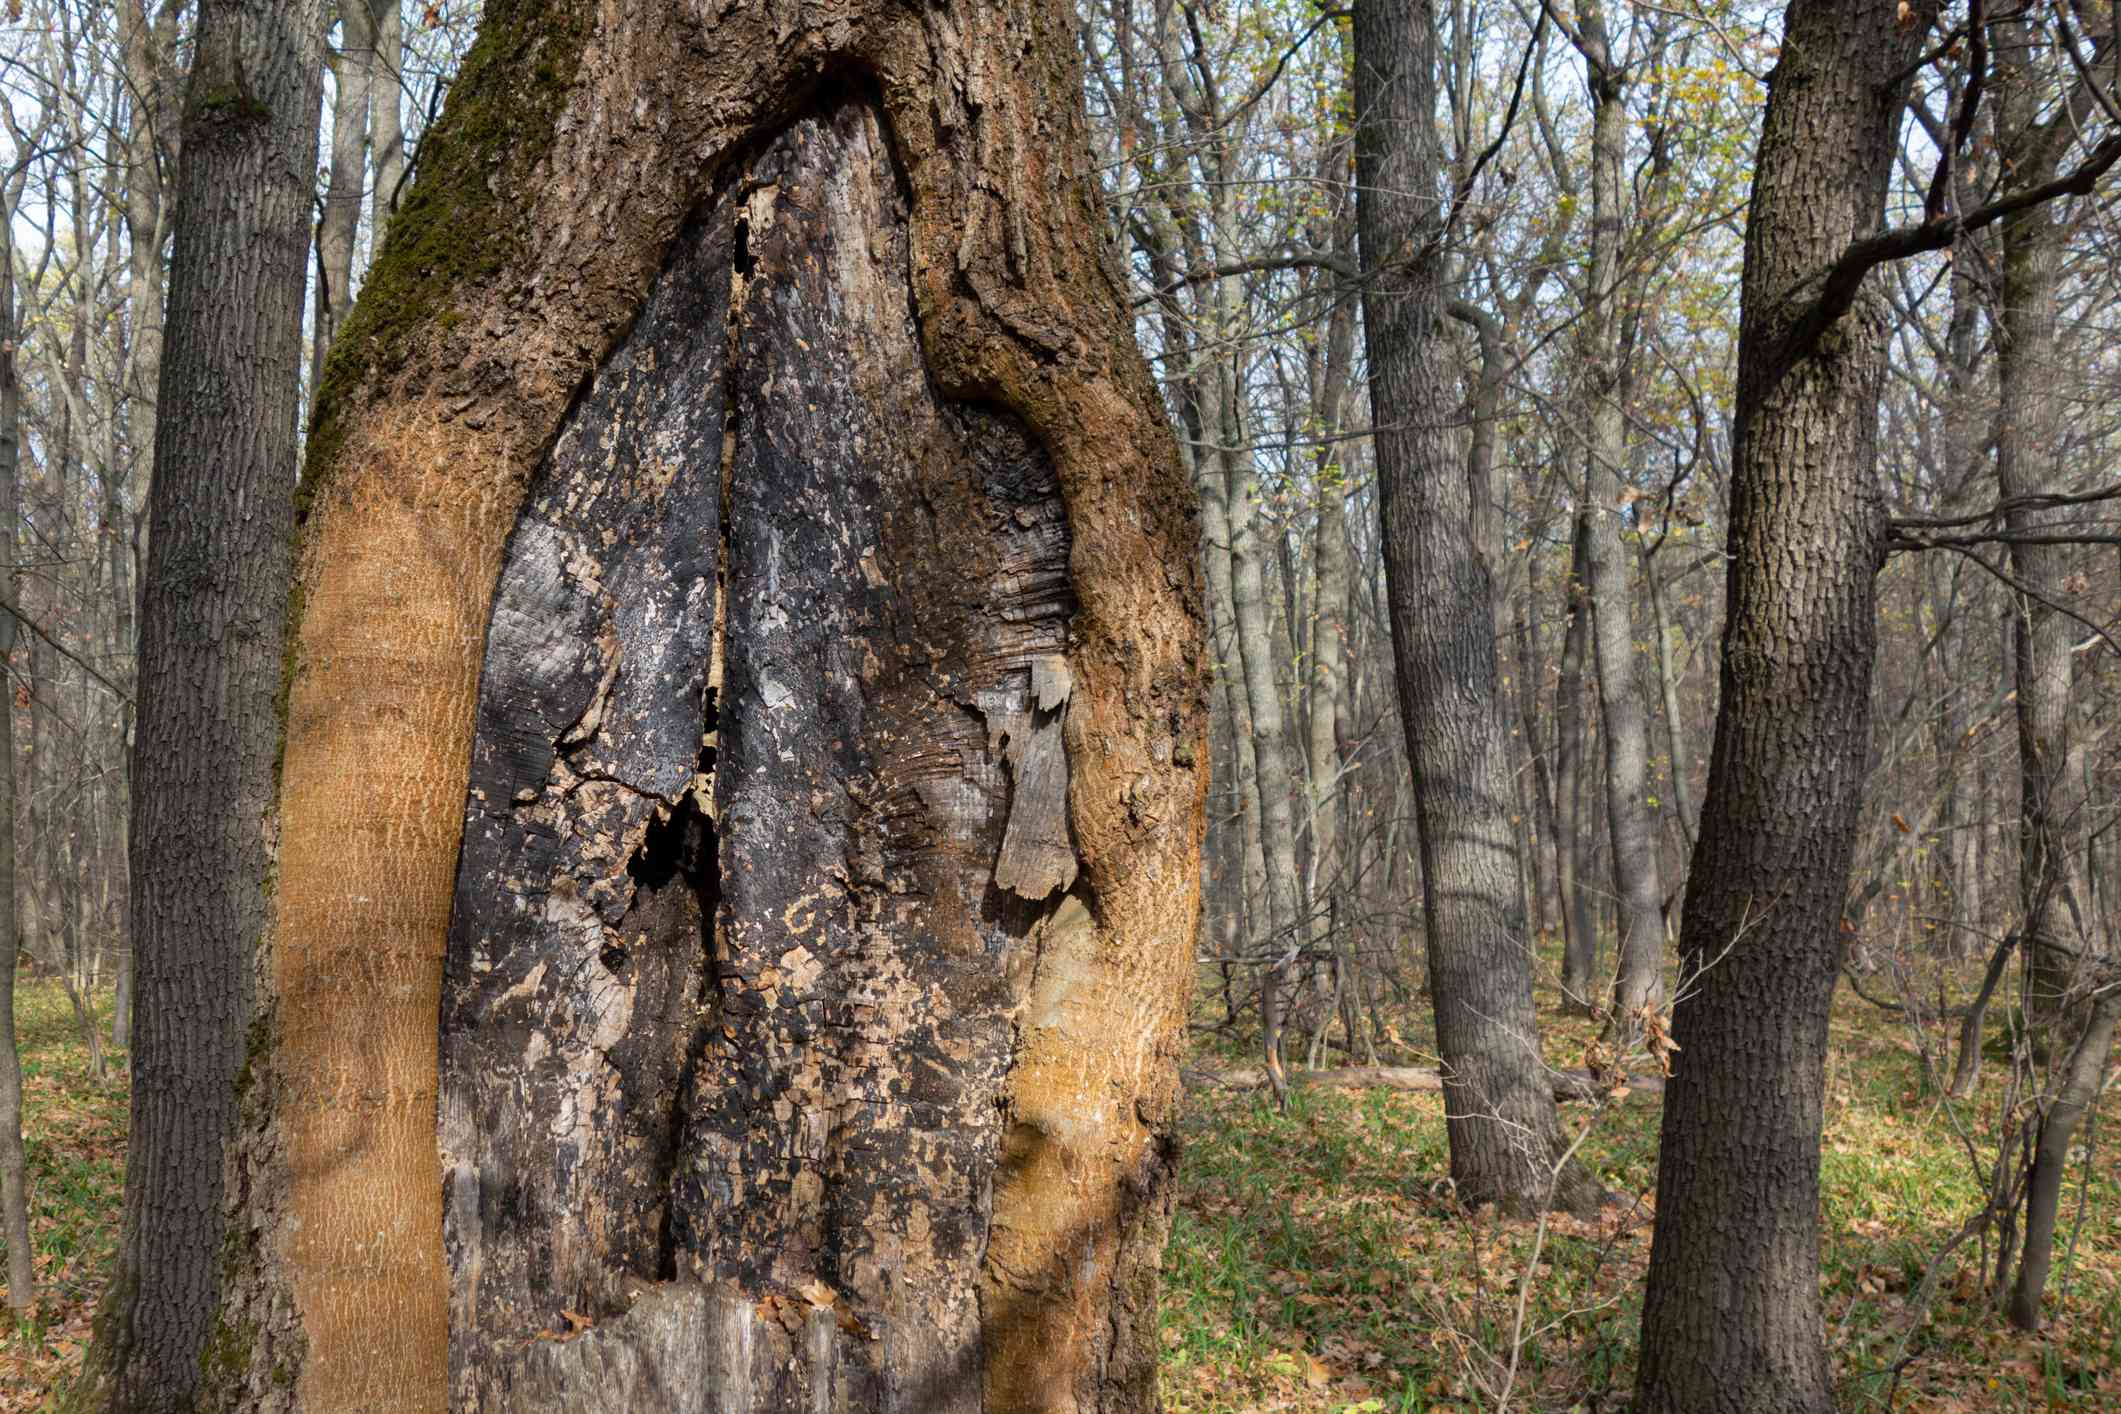 Old tree with bark canker in a forest.